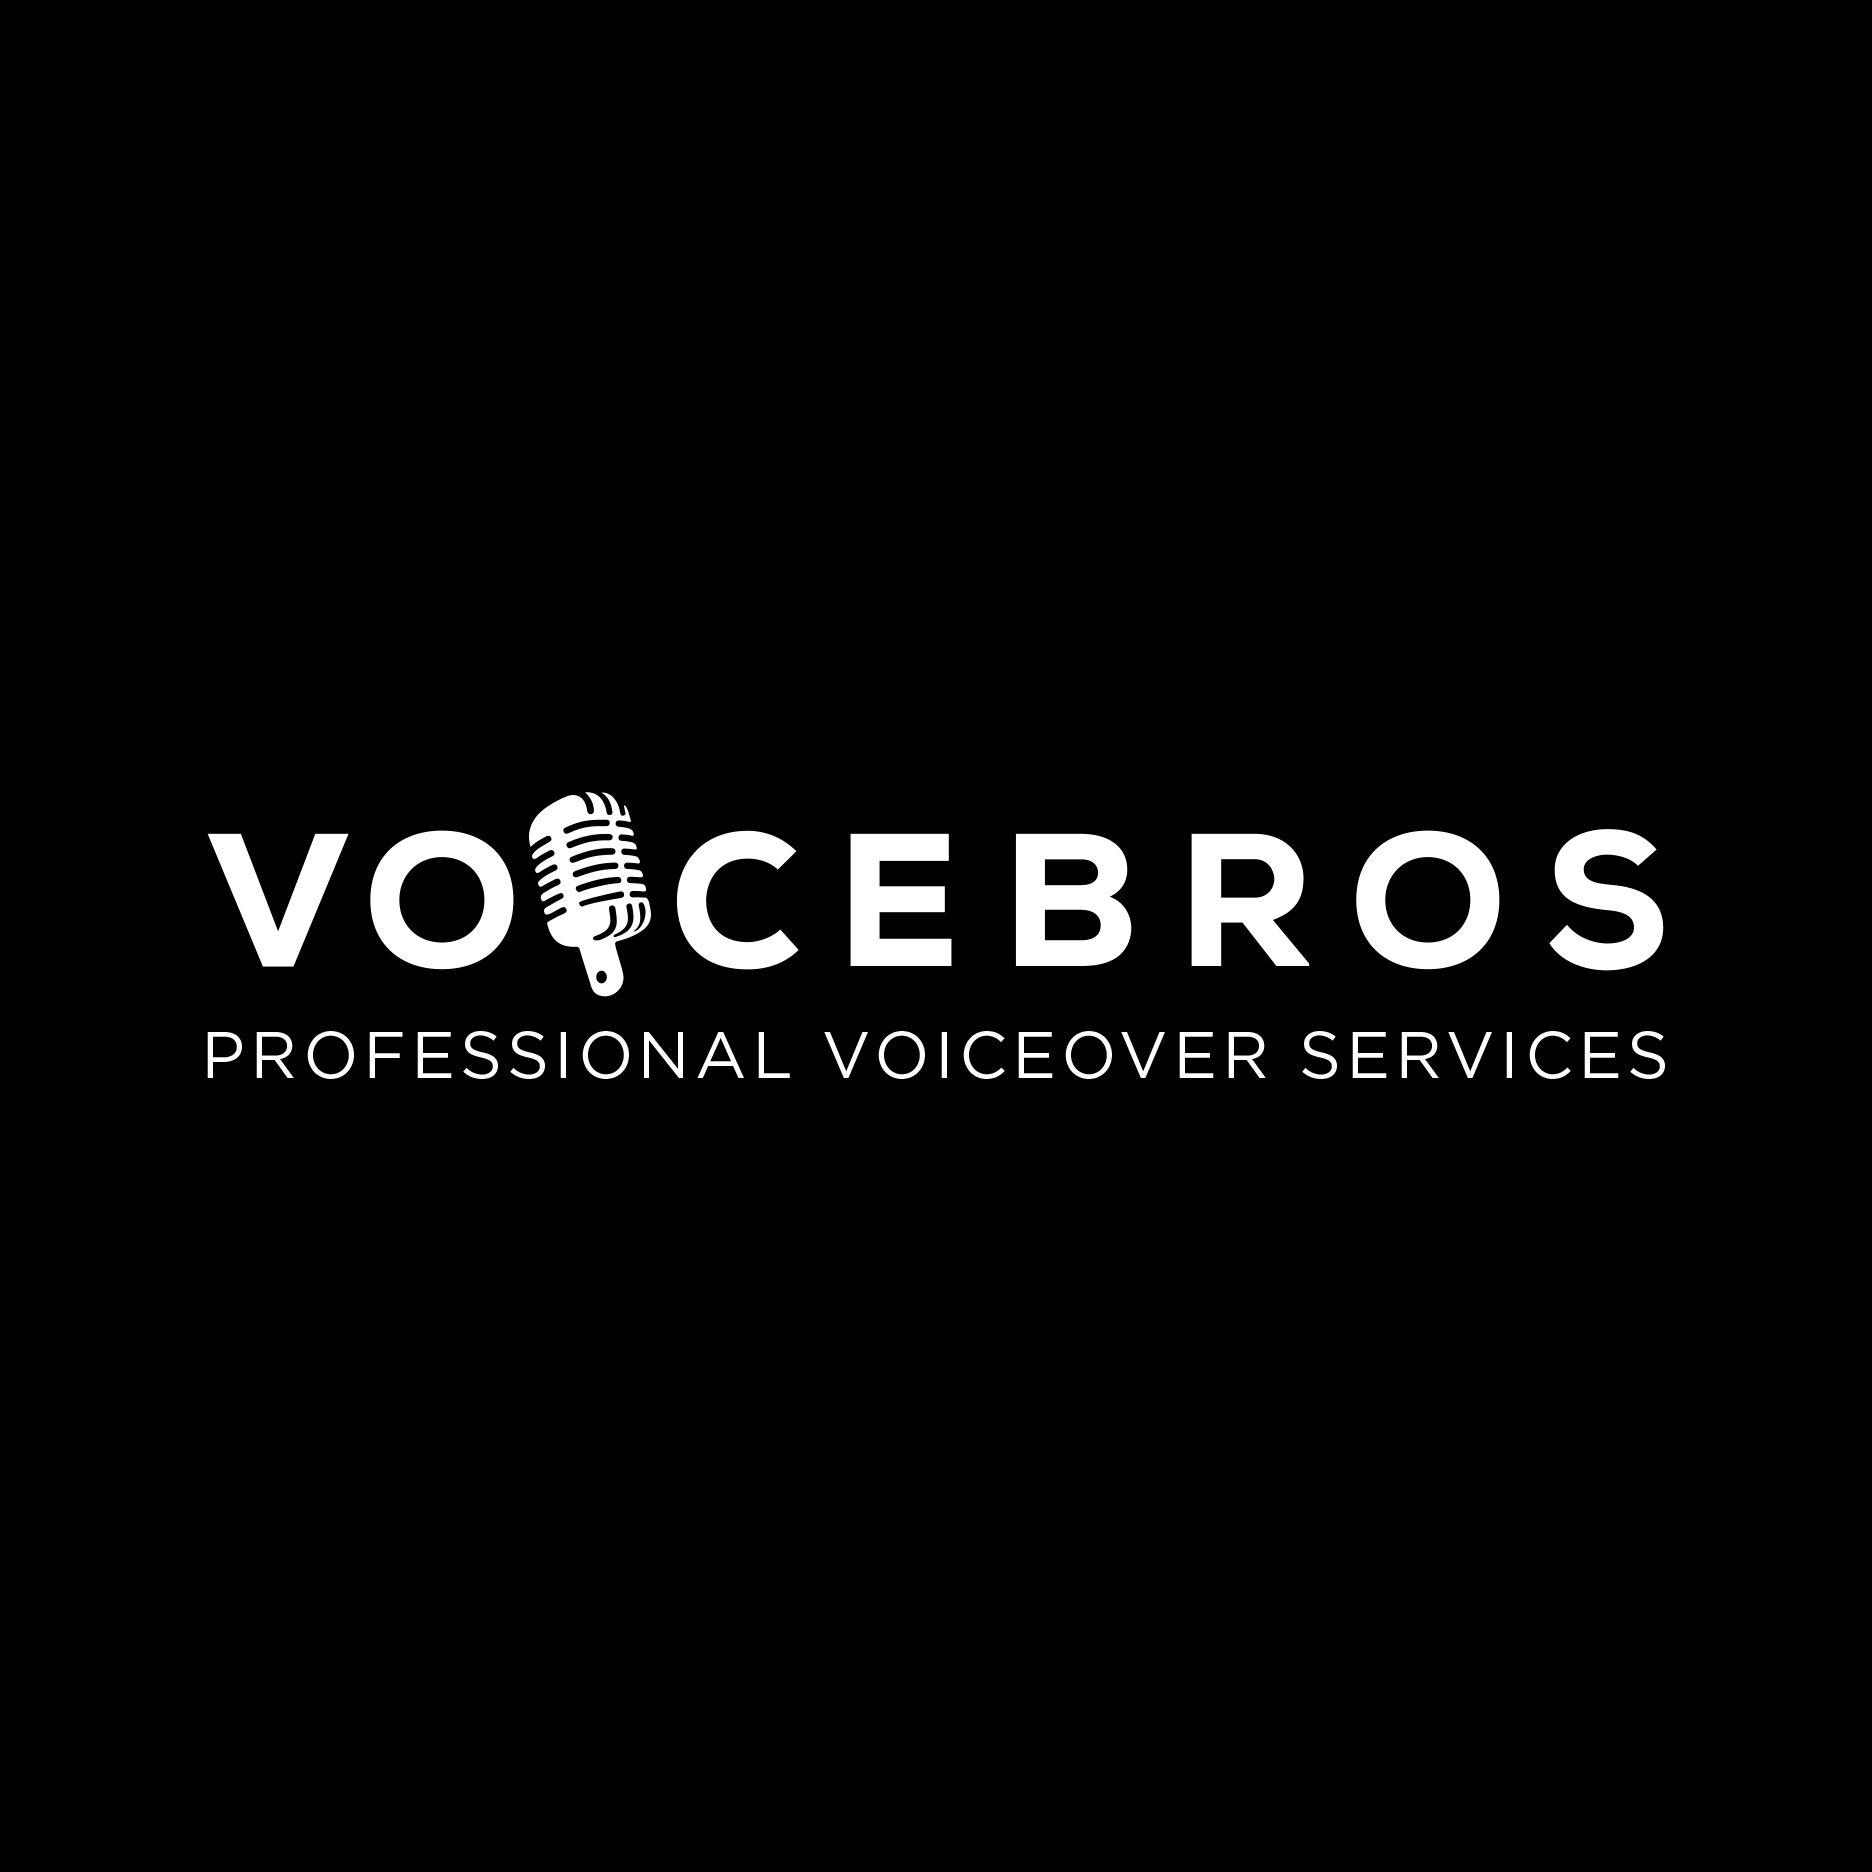 Giuseppe C is a voice over actor